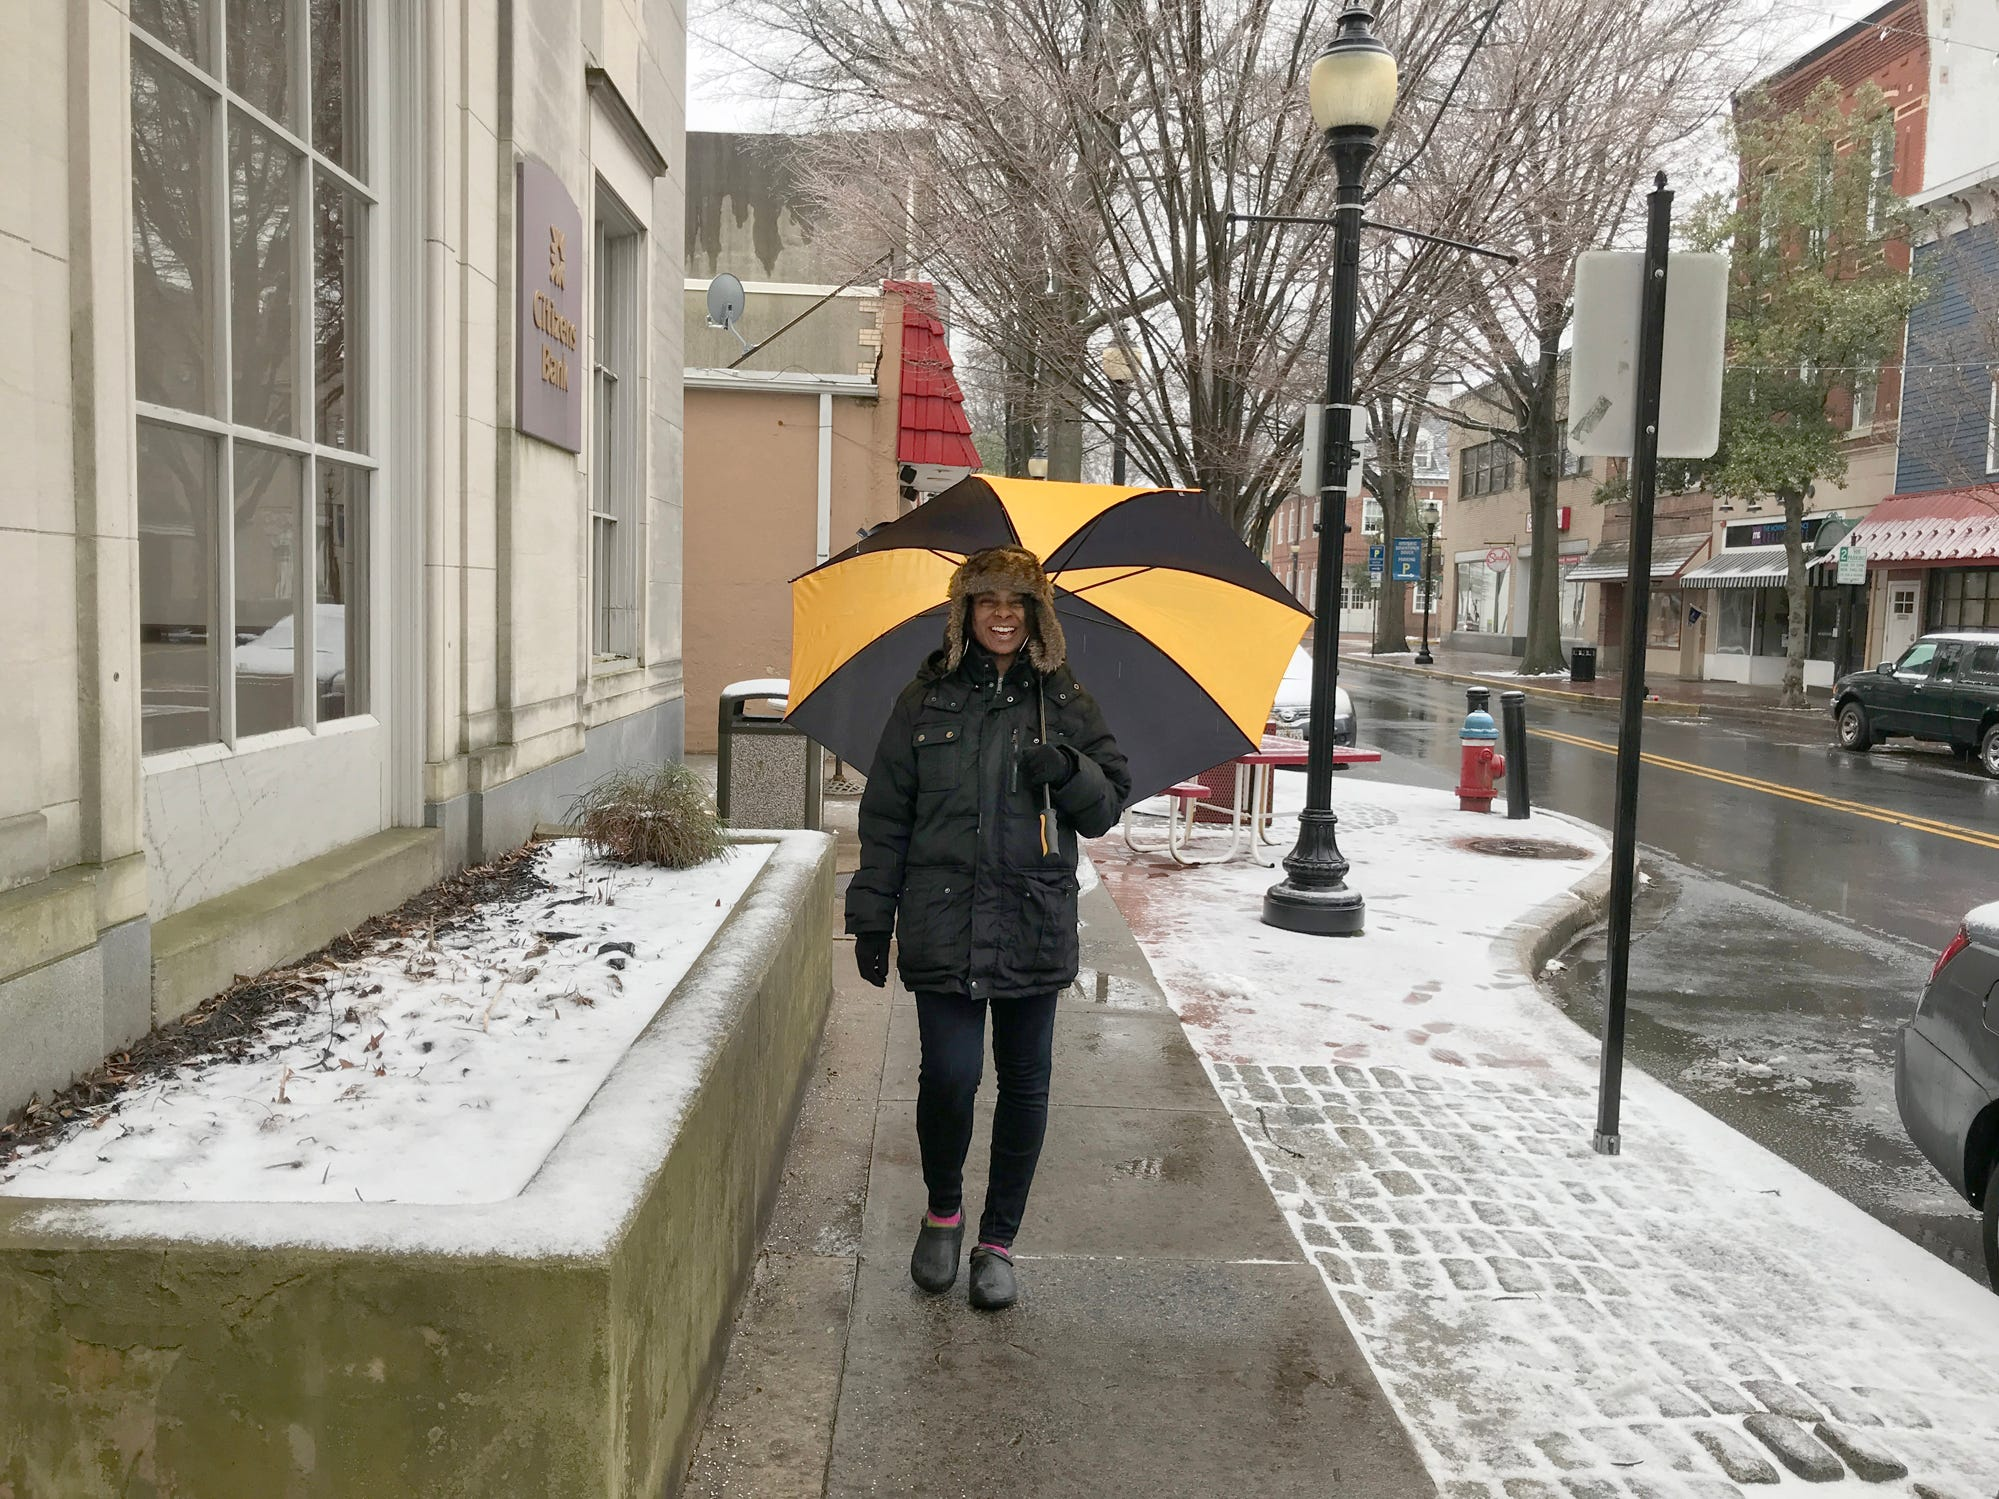 Cherry Seabrooks walks on Loockerman Street in downtown Dover on Monday morning. Seabrooks needed an umbrella as a wintery mix fell in Dover. She said the sidewalks were slippery in some spots but most of the snow and ice had already melted.